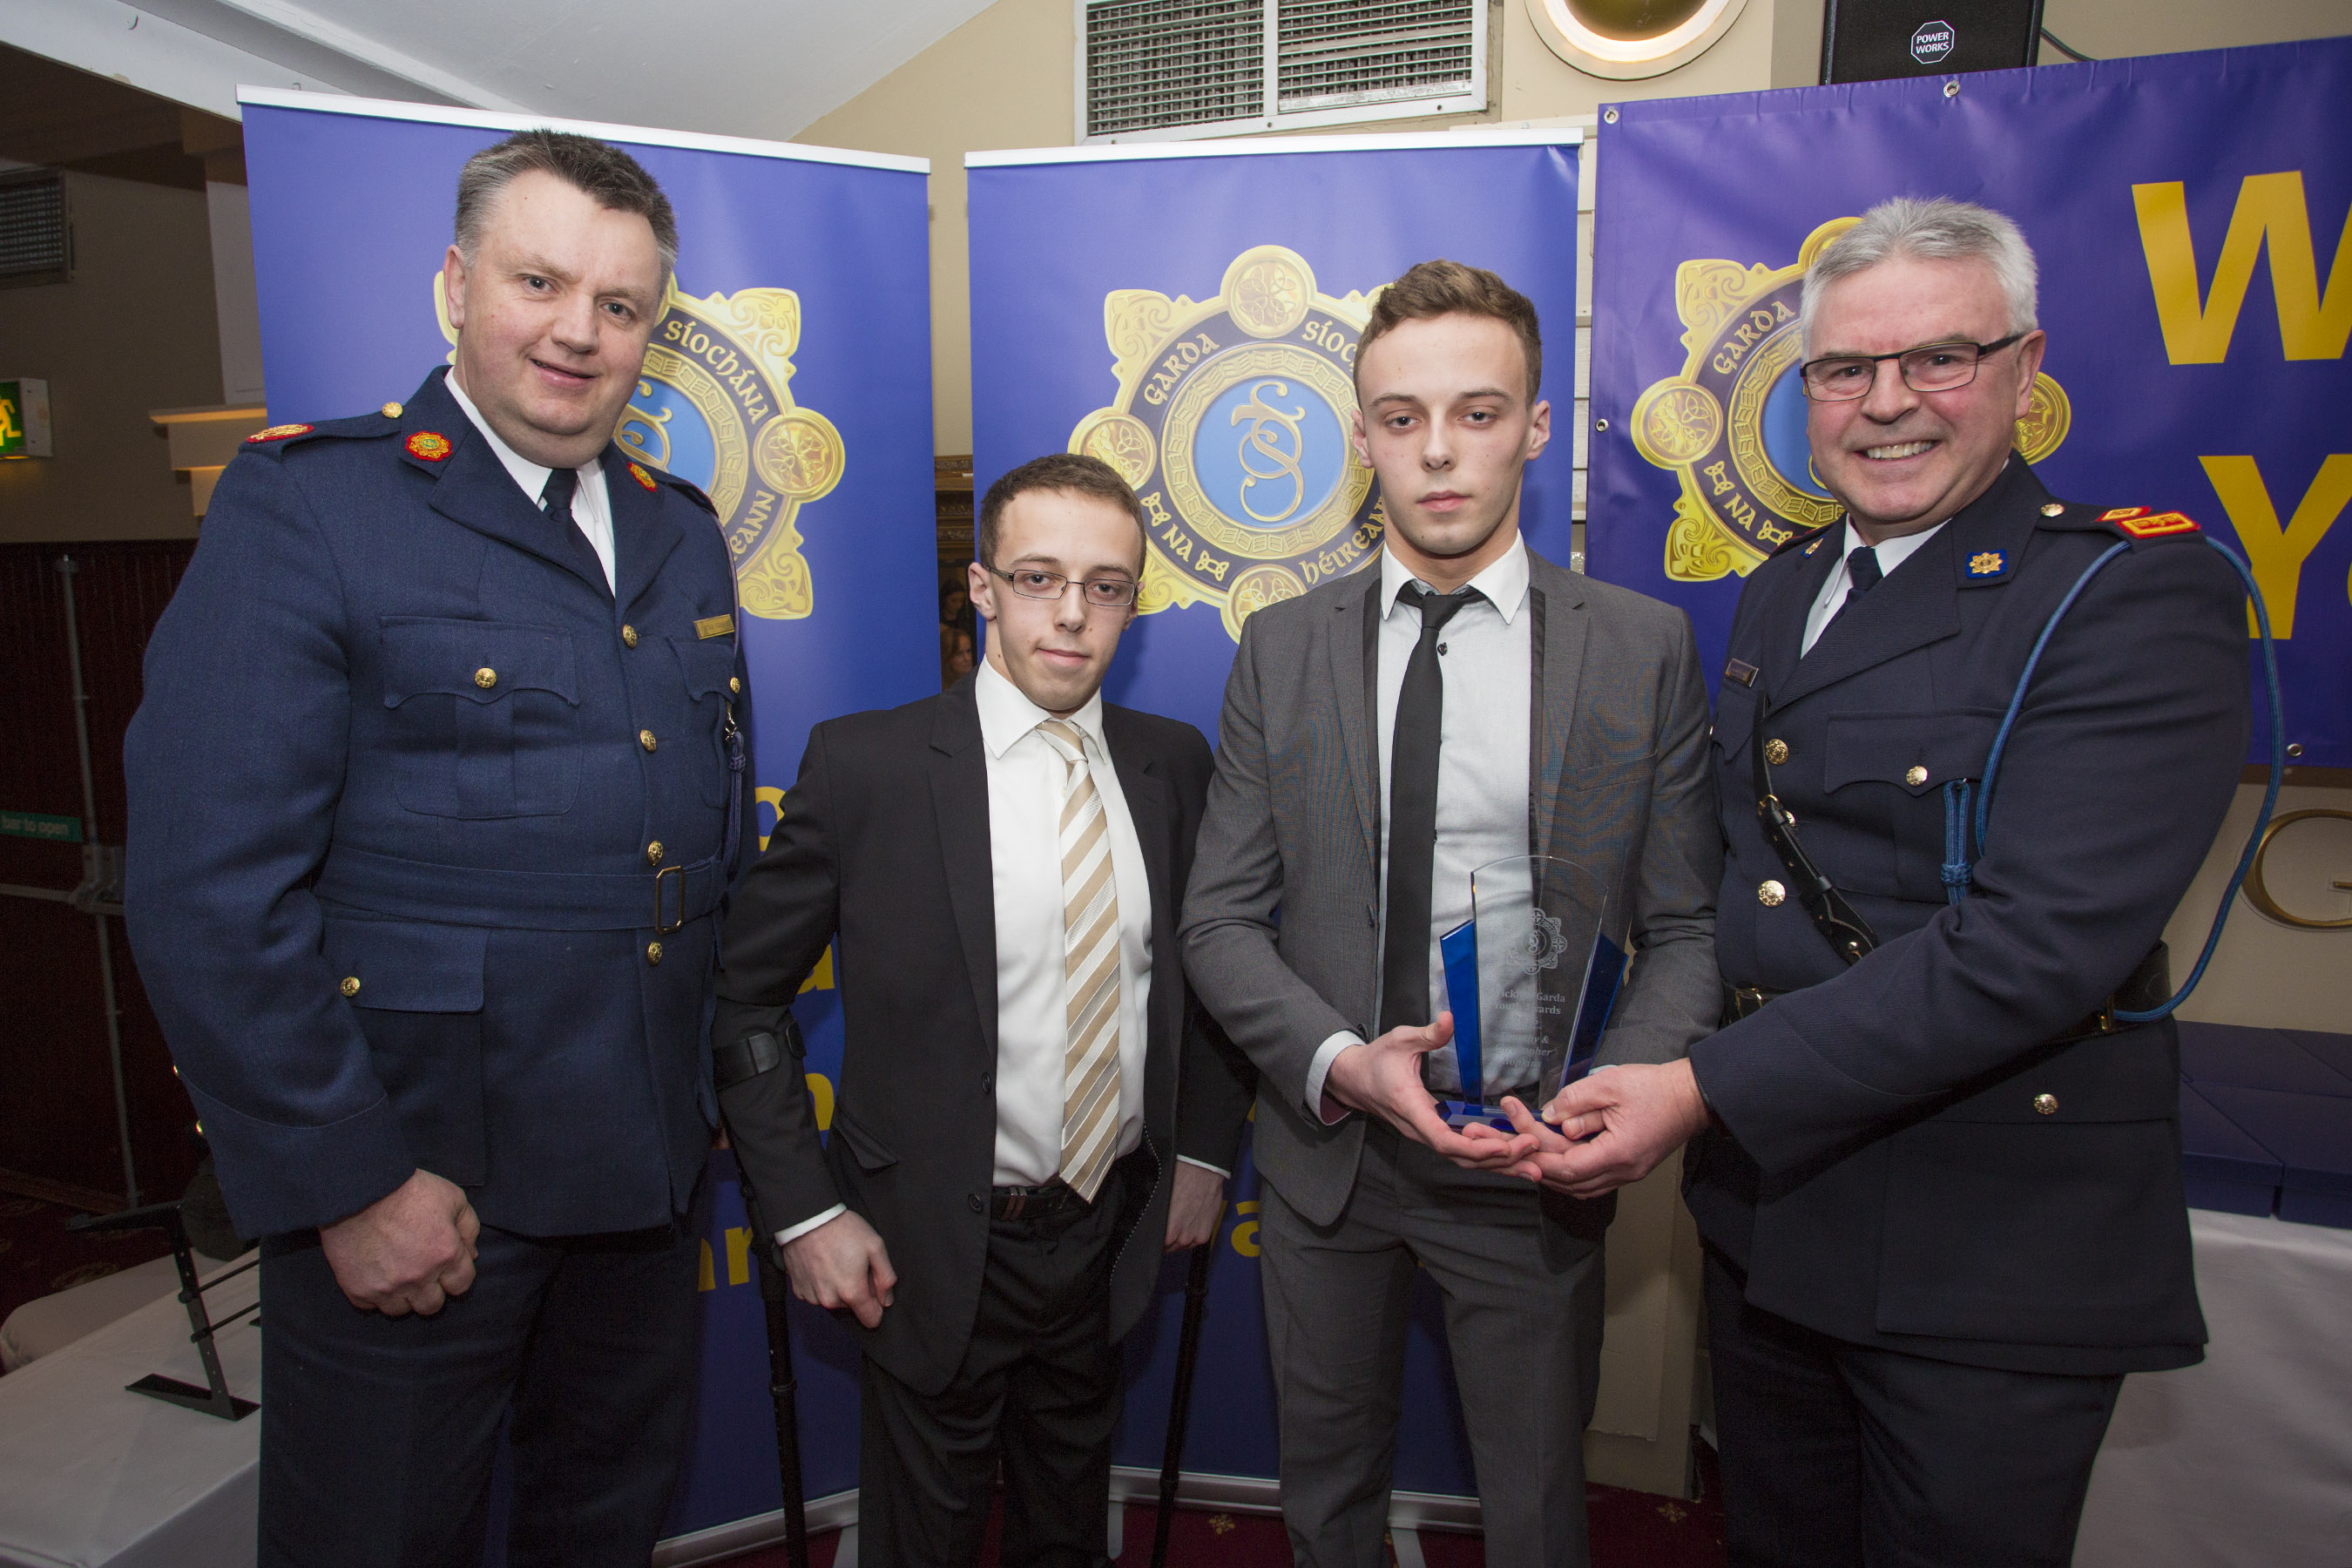 Timothy and Christopher Hopkins from Roundwood recieve their youth award from Assistant Chief Commisiner Fintan Fanning and Superintendant Pat Ward at the 2nd Annual Wicklow Garda Youth Awards which was held in the Grand Hotel, Wicklow Town.